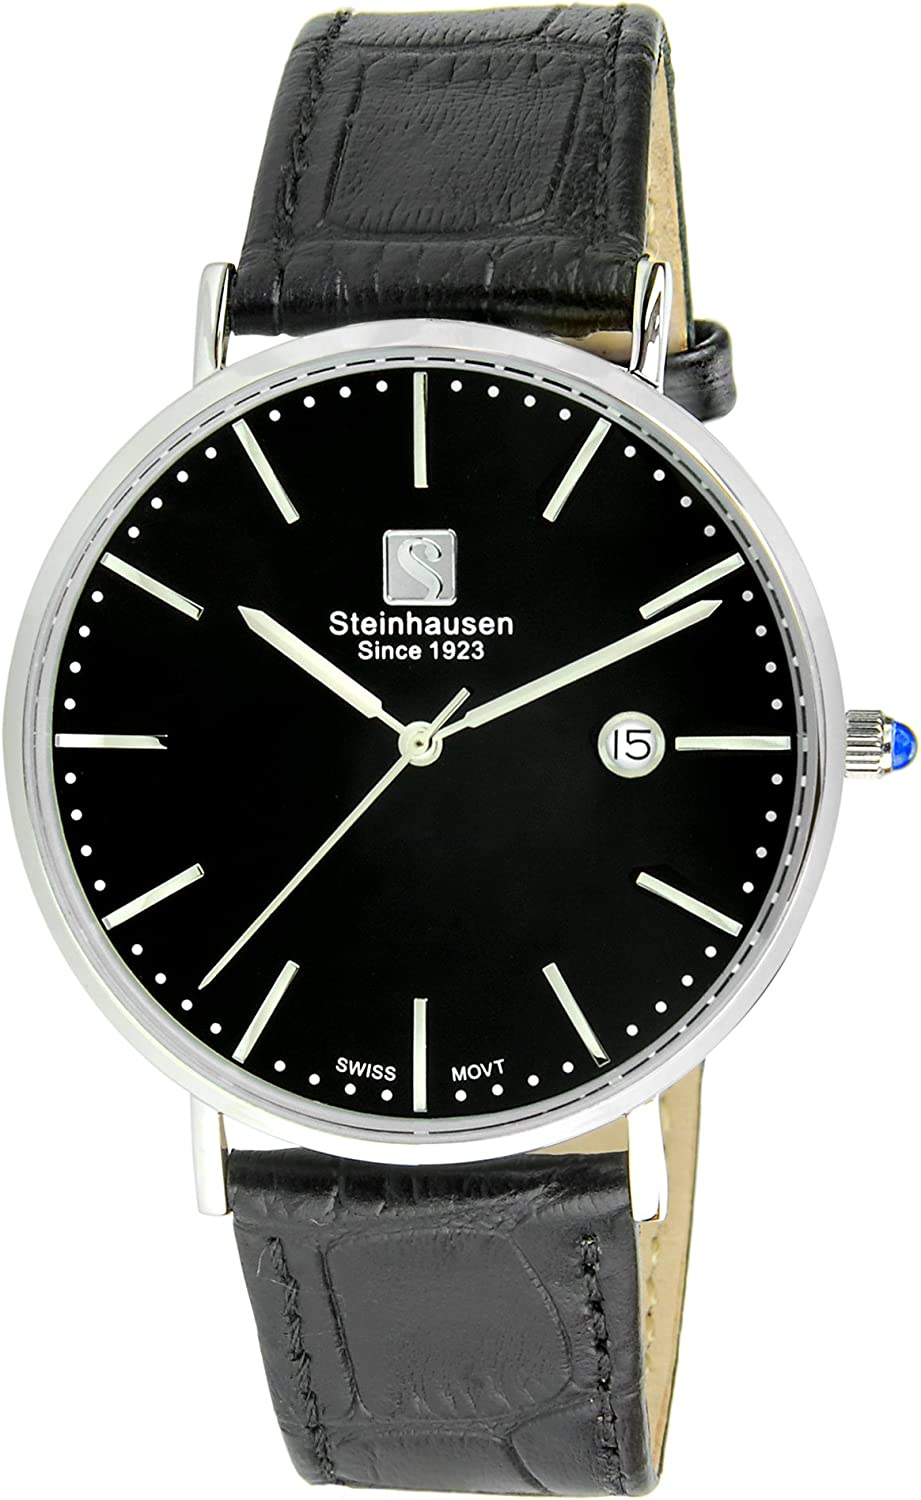 Steinhausen Men s S0519 Classic Burgdorf Swiss Quartz Stainless Steel Watch with Black Leather Band